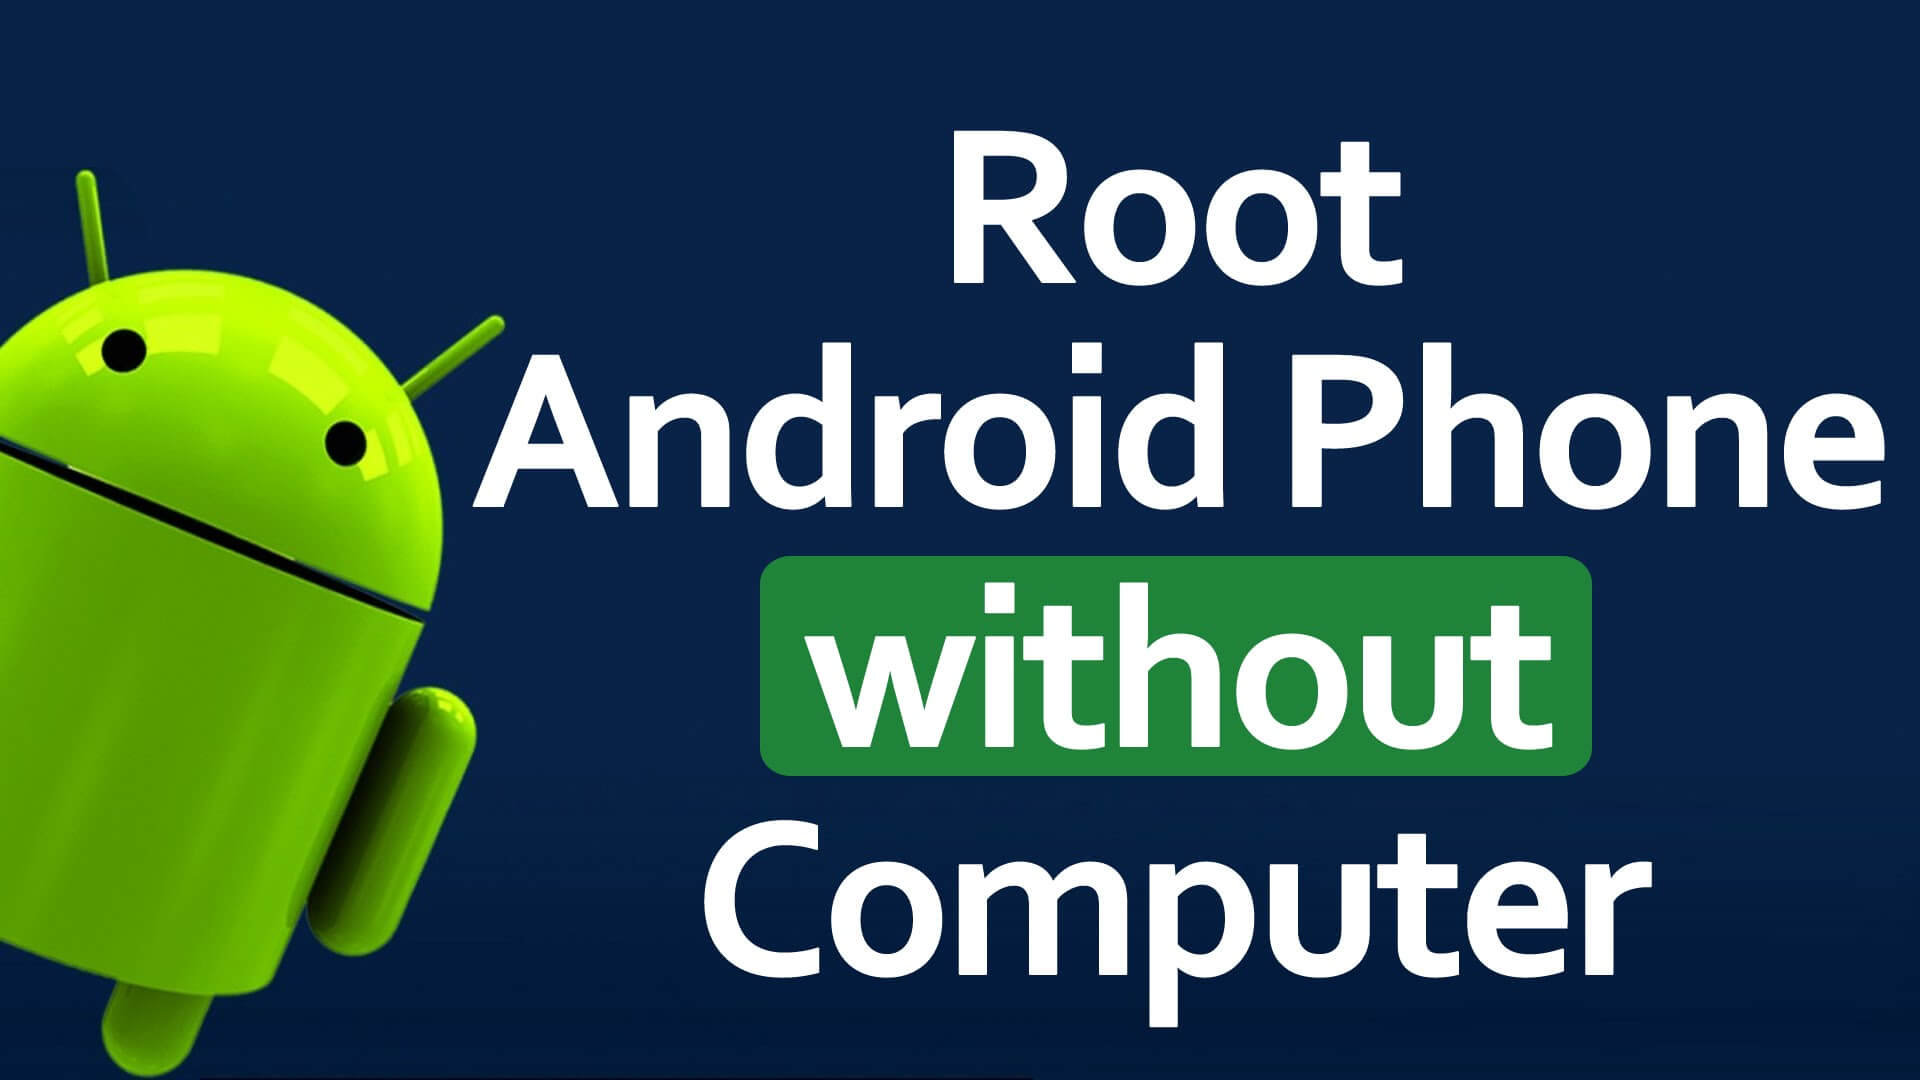 Phone Android Phone Root Software 10 ways how to root android without pc computer viral hax what is rooting